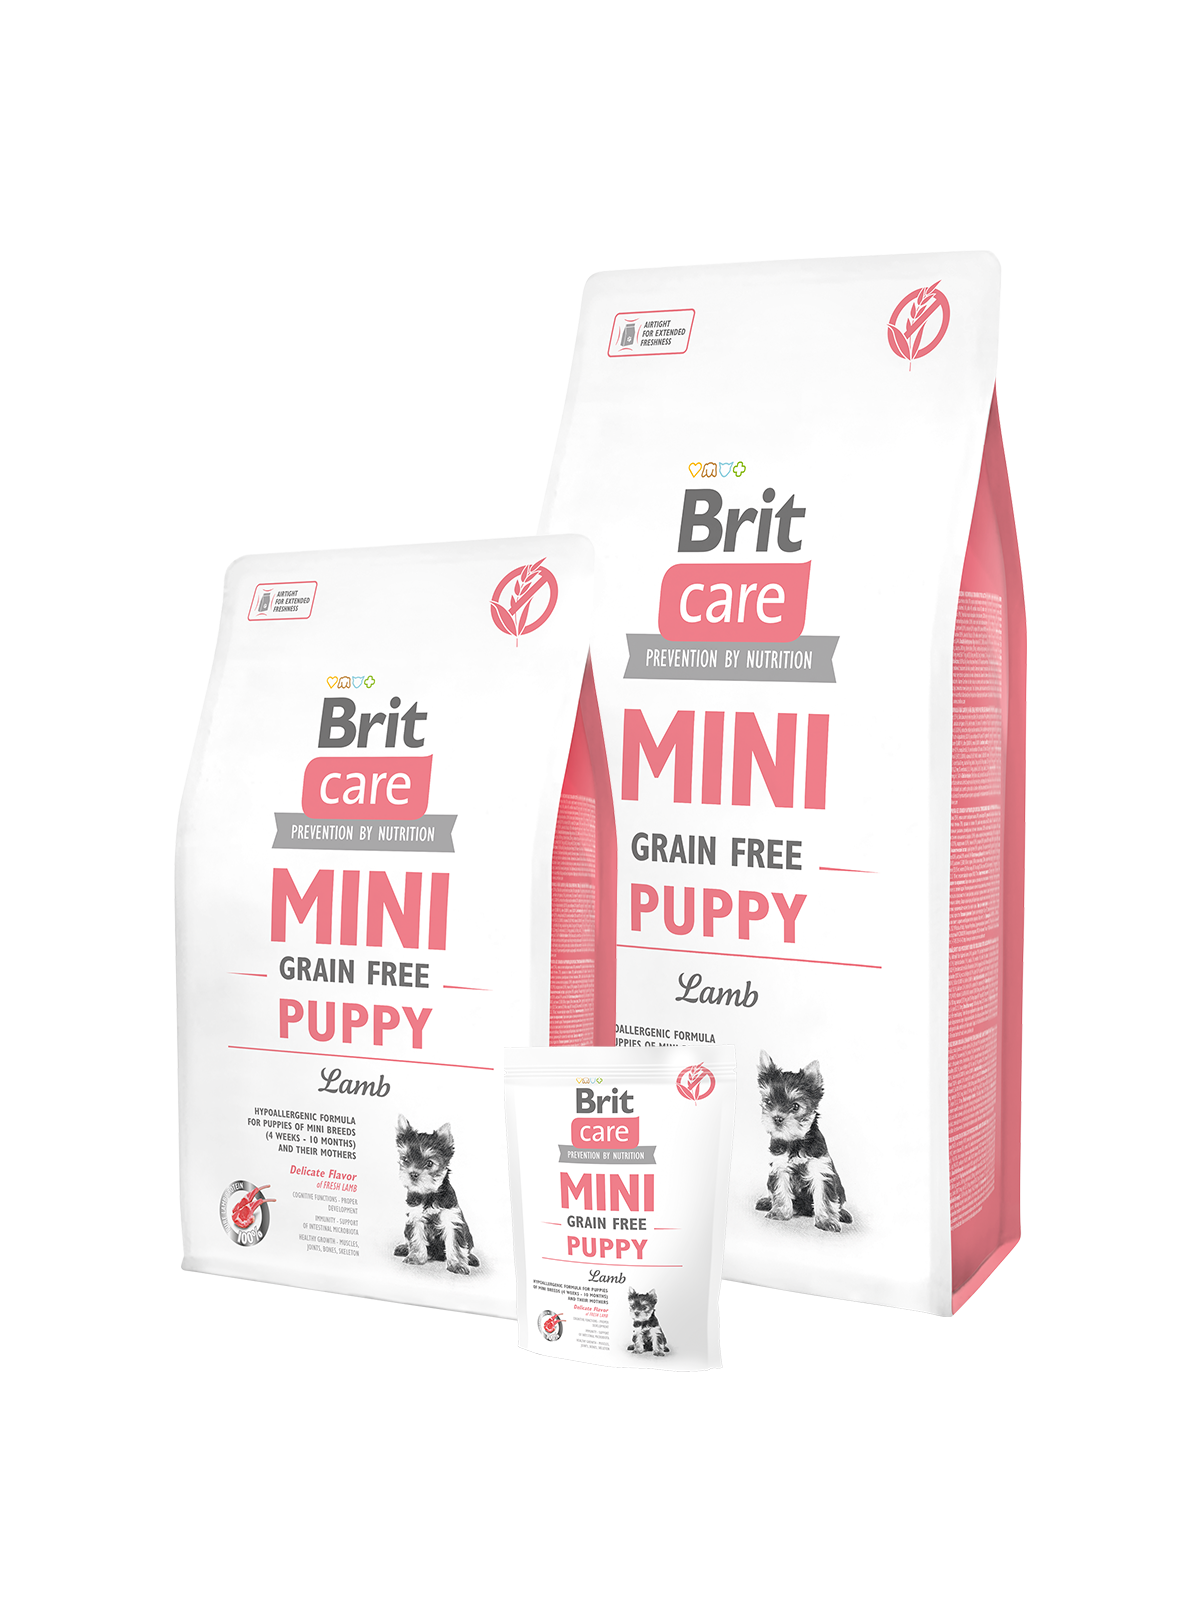 brit care mini grain free puppy lamb